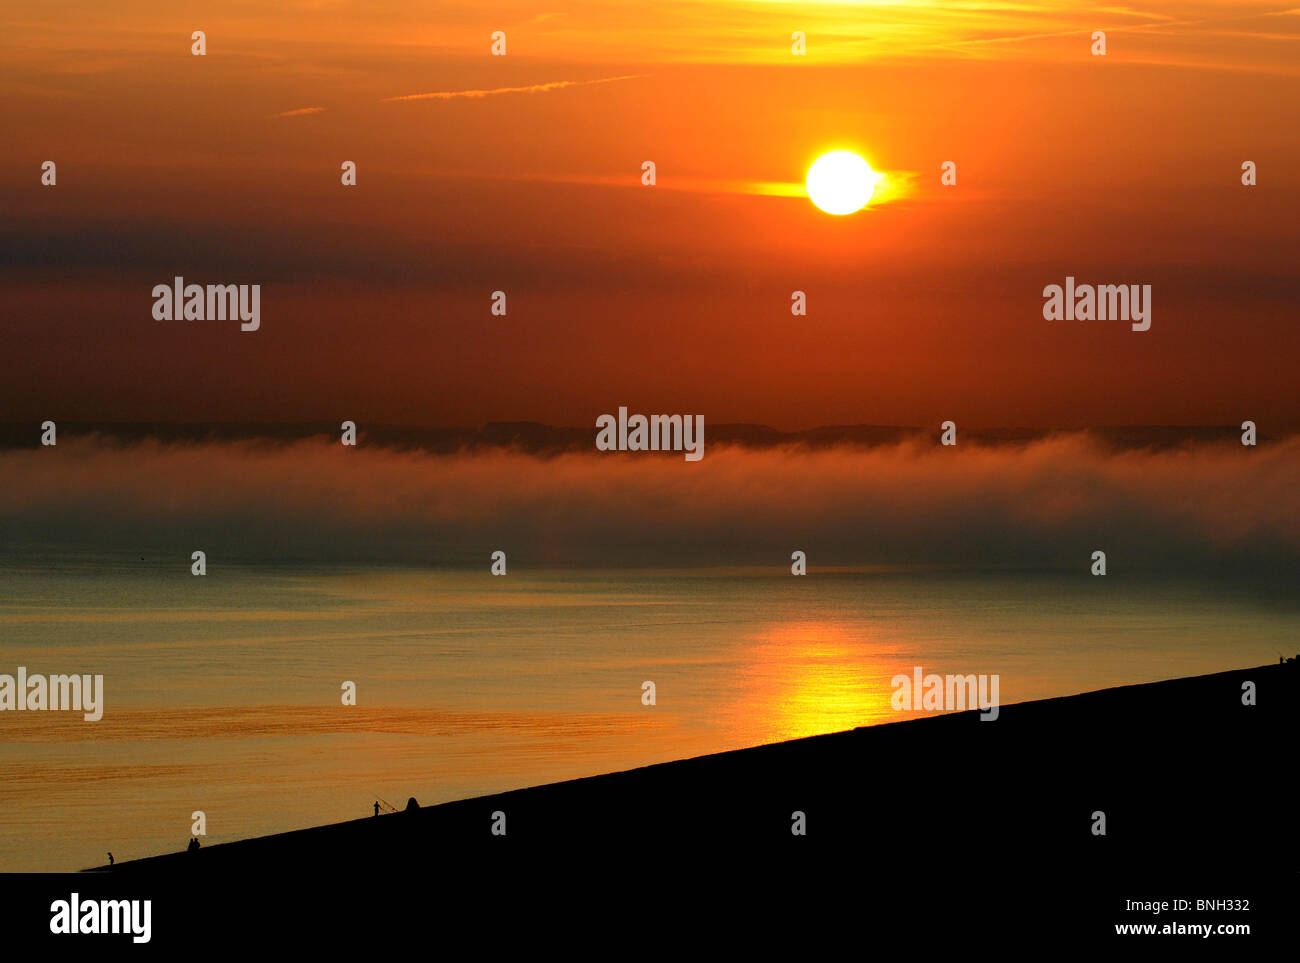 Heat wave and fog bank with sunsetting over Lyme Bay, viewed from Chesil beach. Dorset UK. Stock Photo